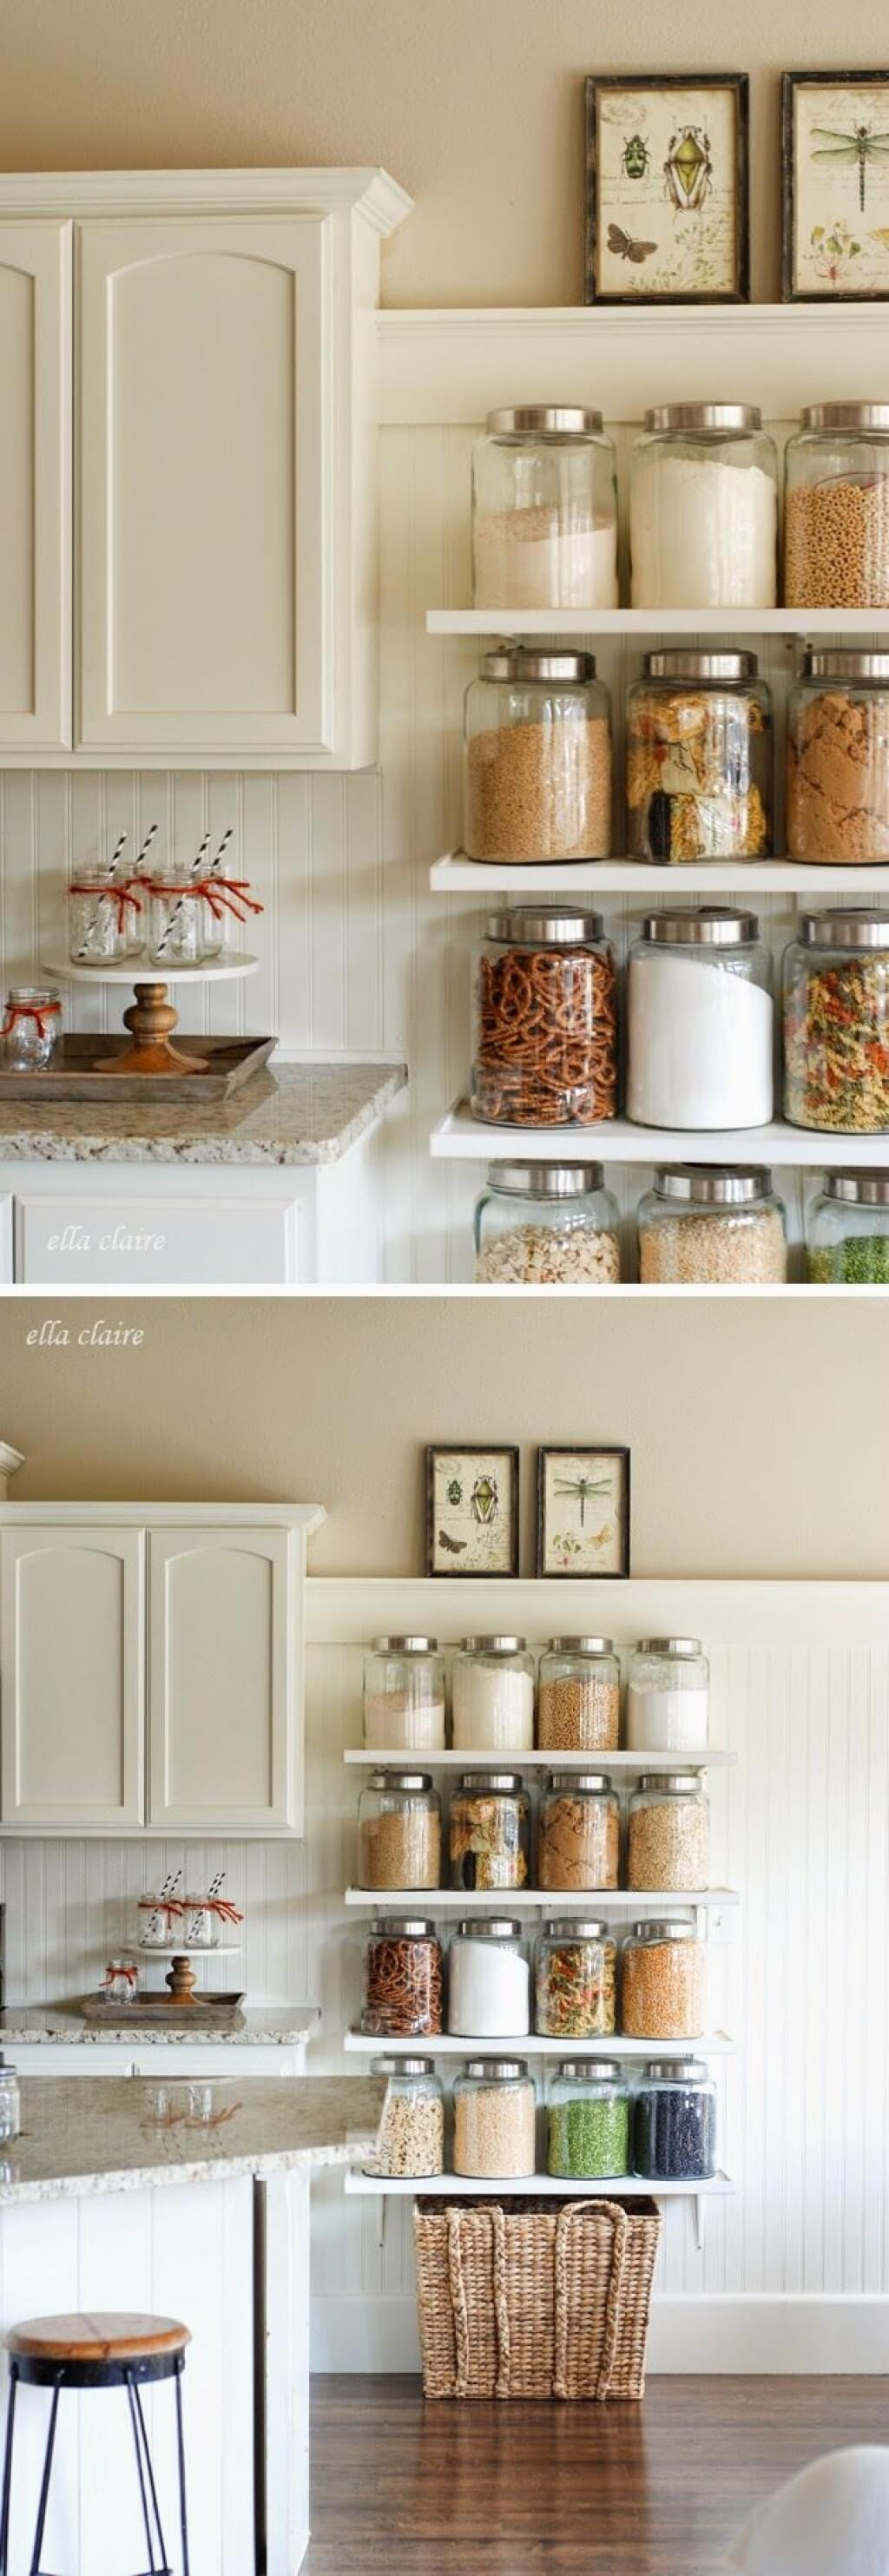 Best ideas about Storage Ideas For Small Kitchens . Save or Pin 35 Best Small Kitchen Storage Organization Ideas and Now.